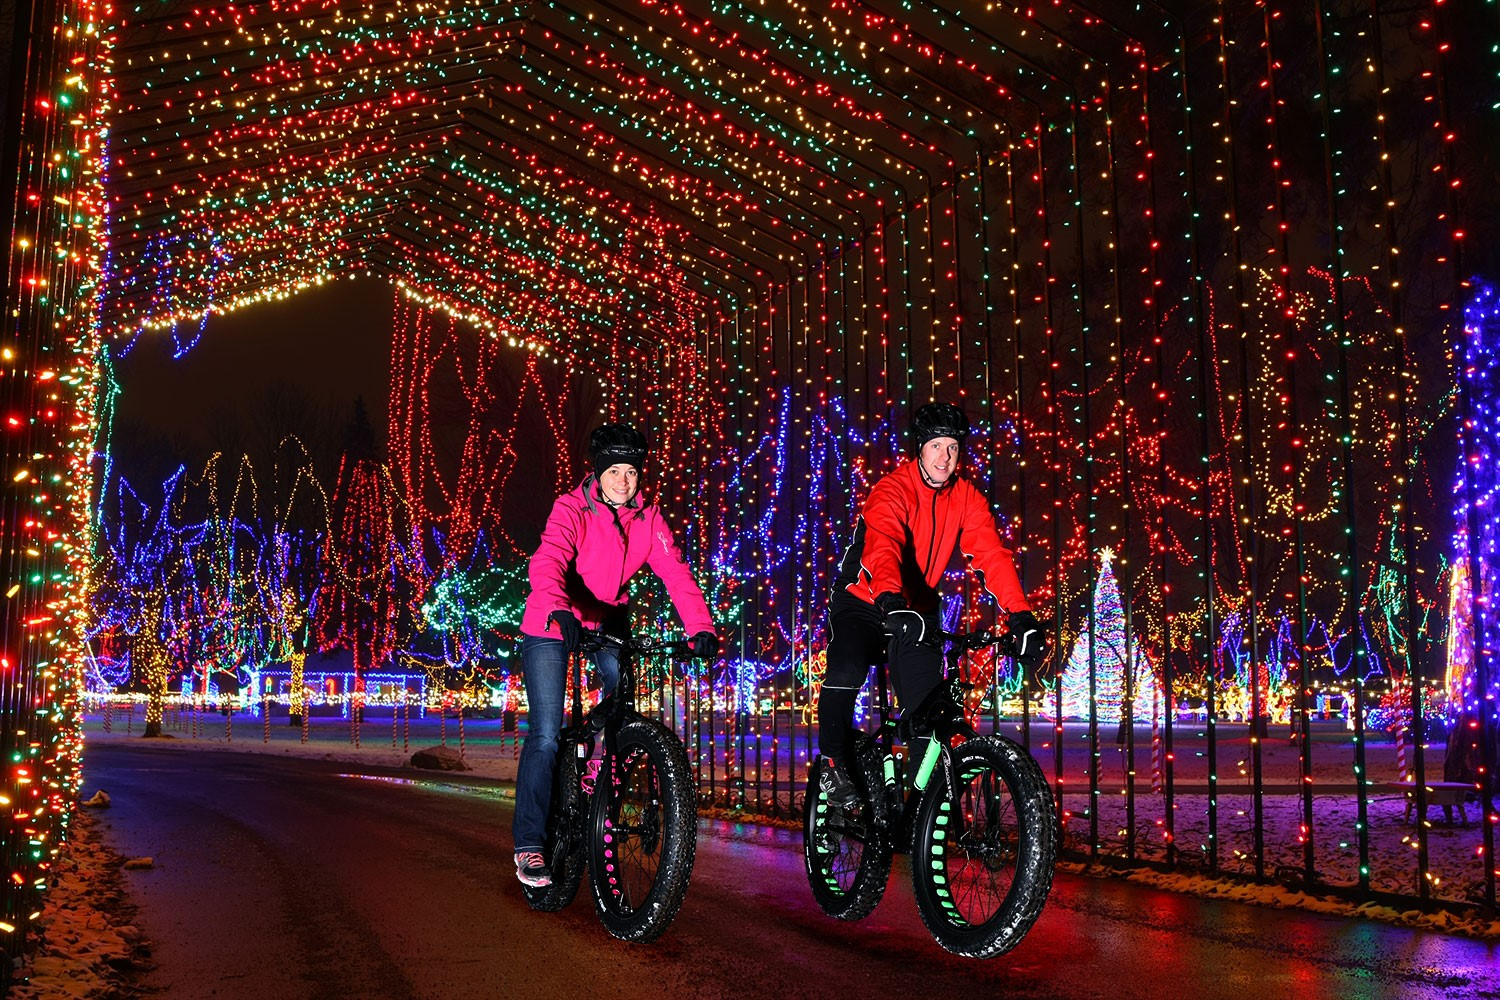 Holiday Lights on Bikes